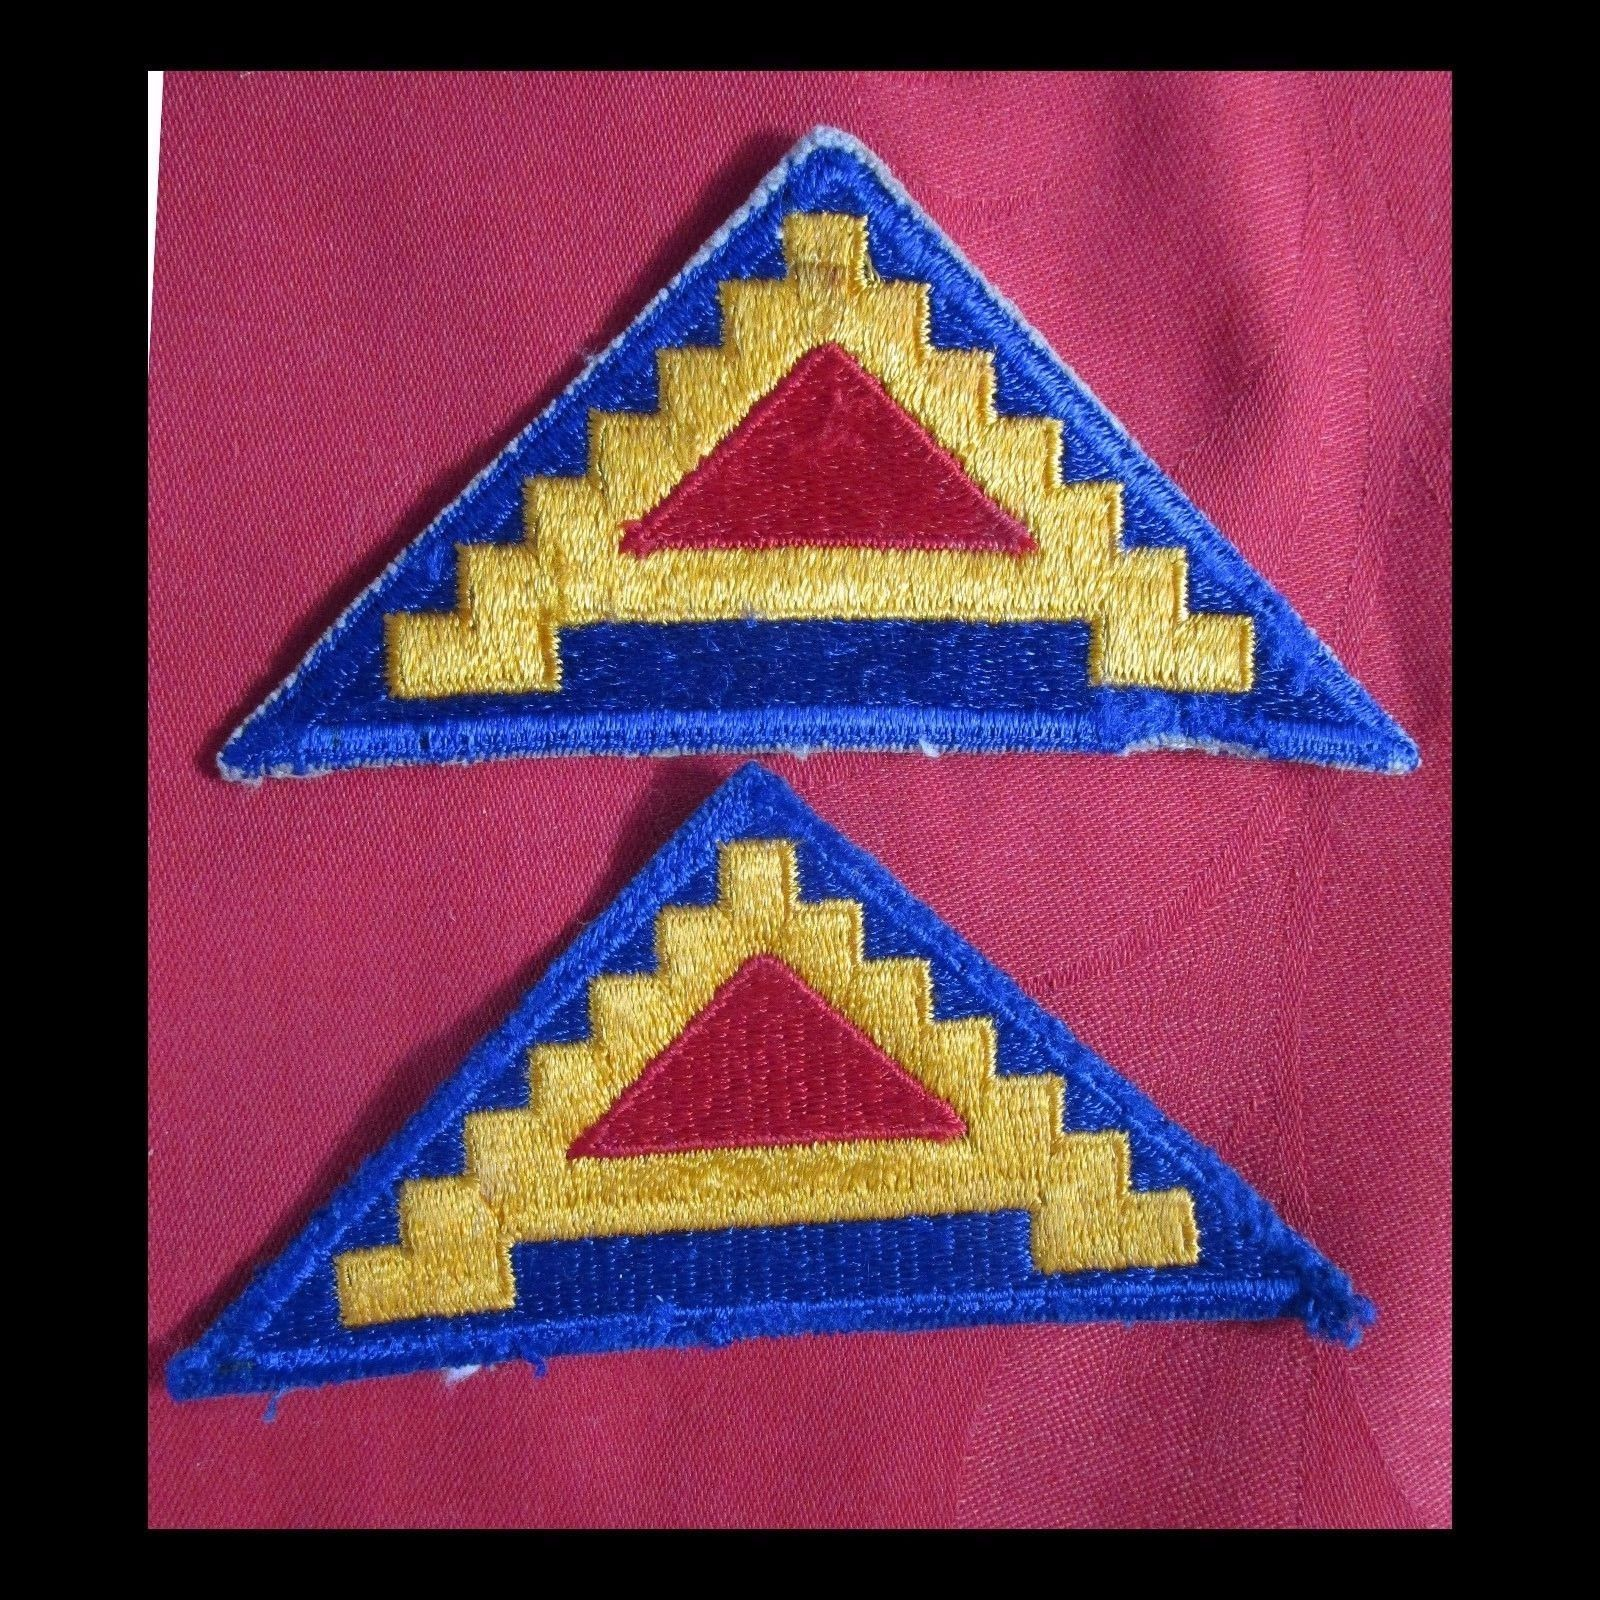 US ARMY 7TH ARMY SHOULDER PATCH.